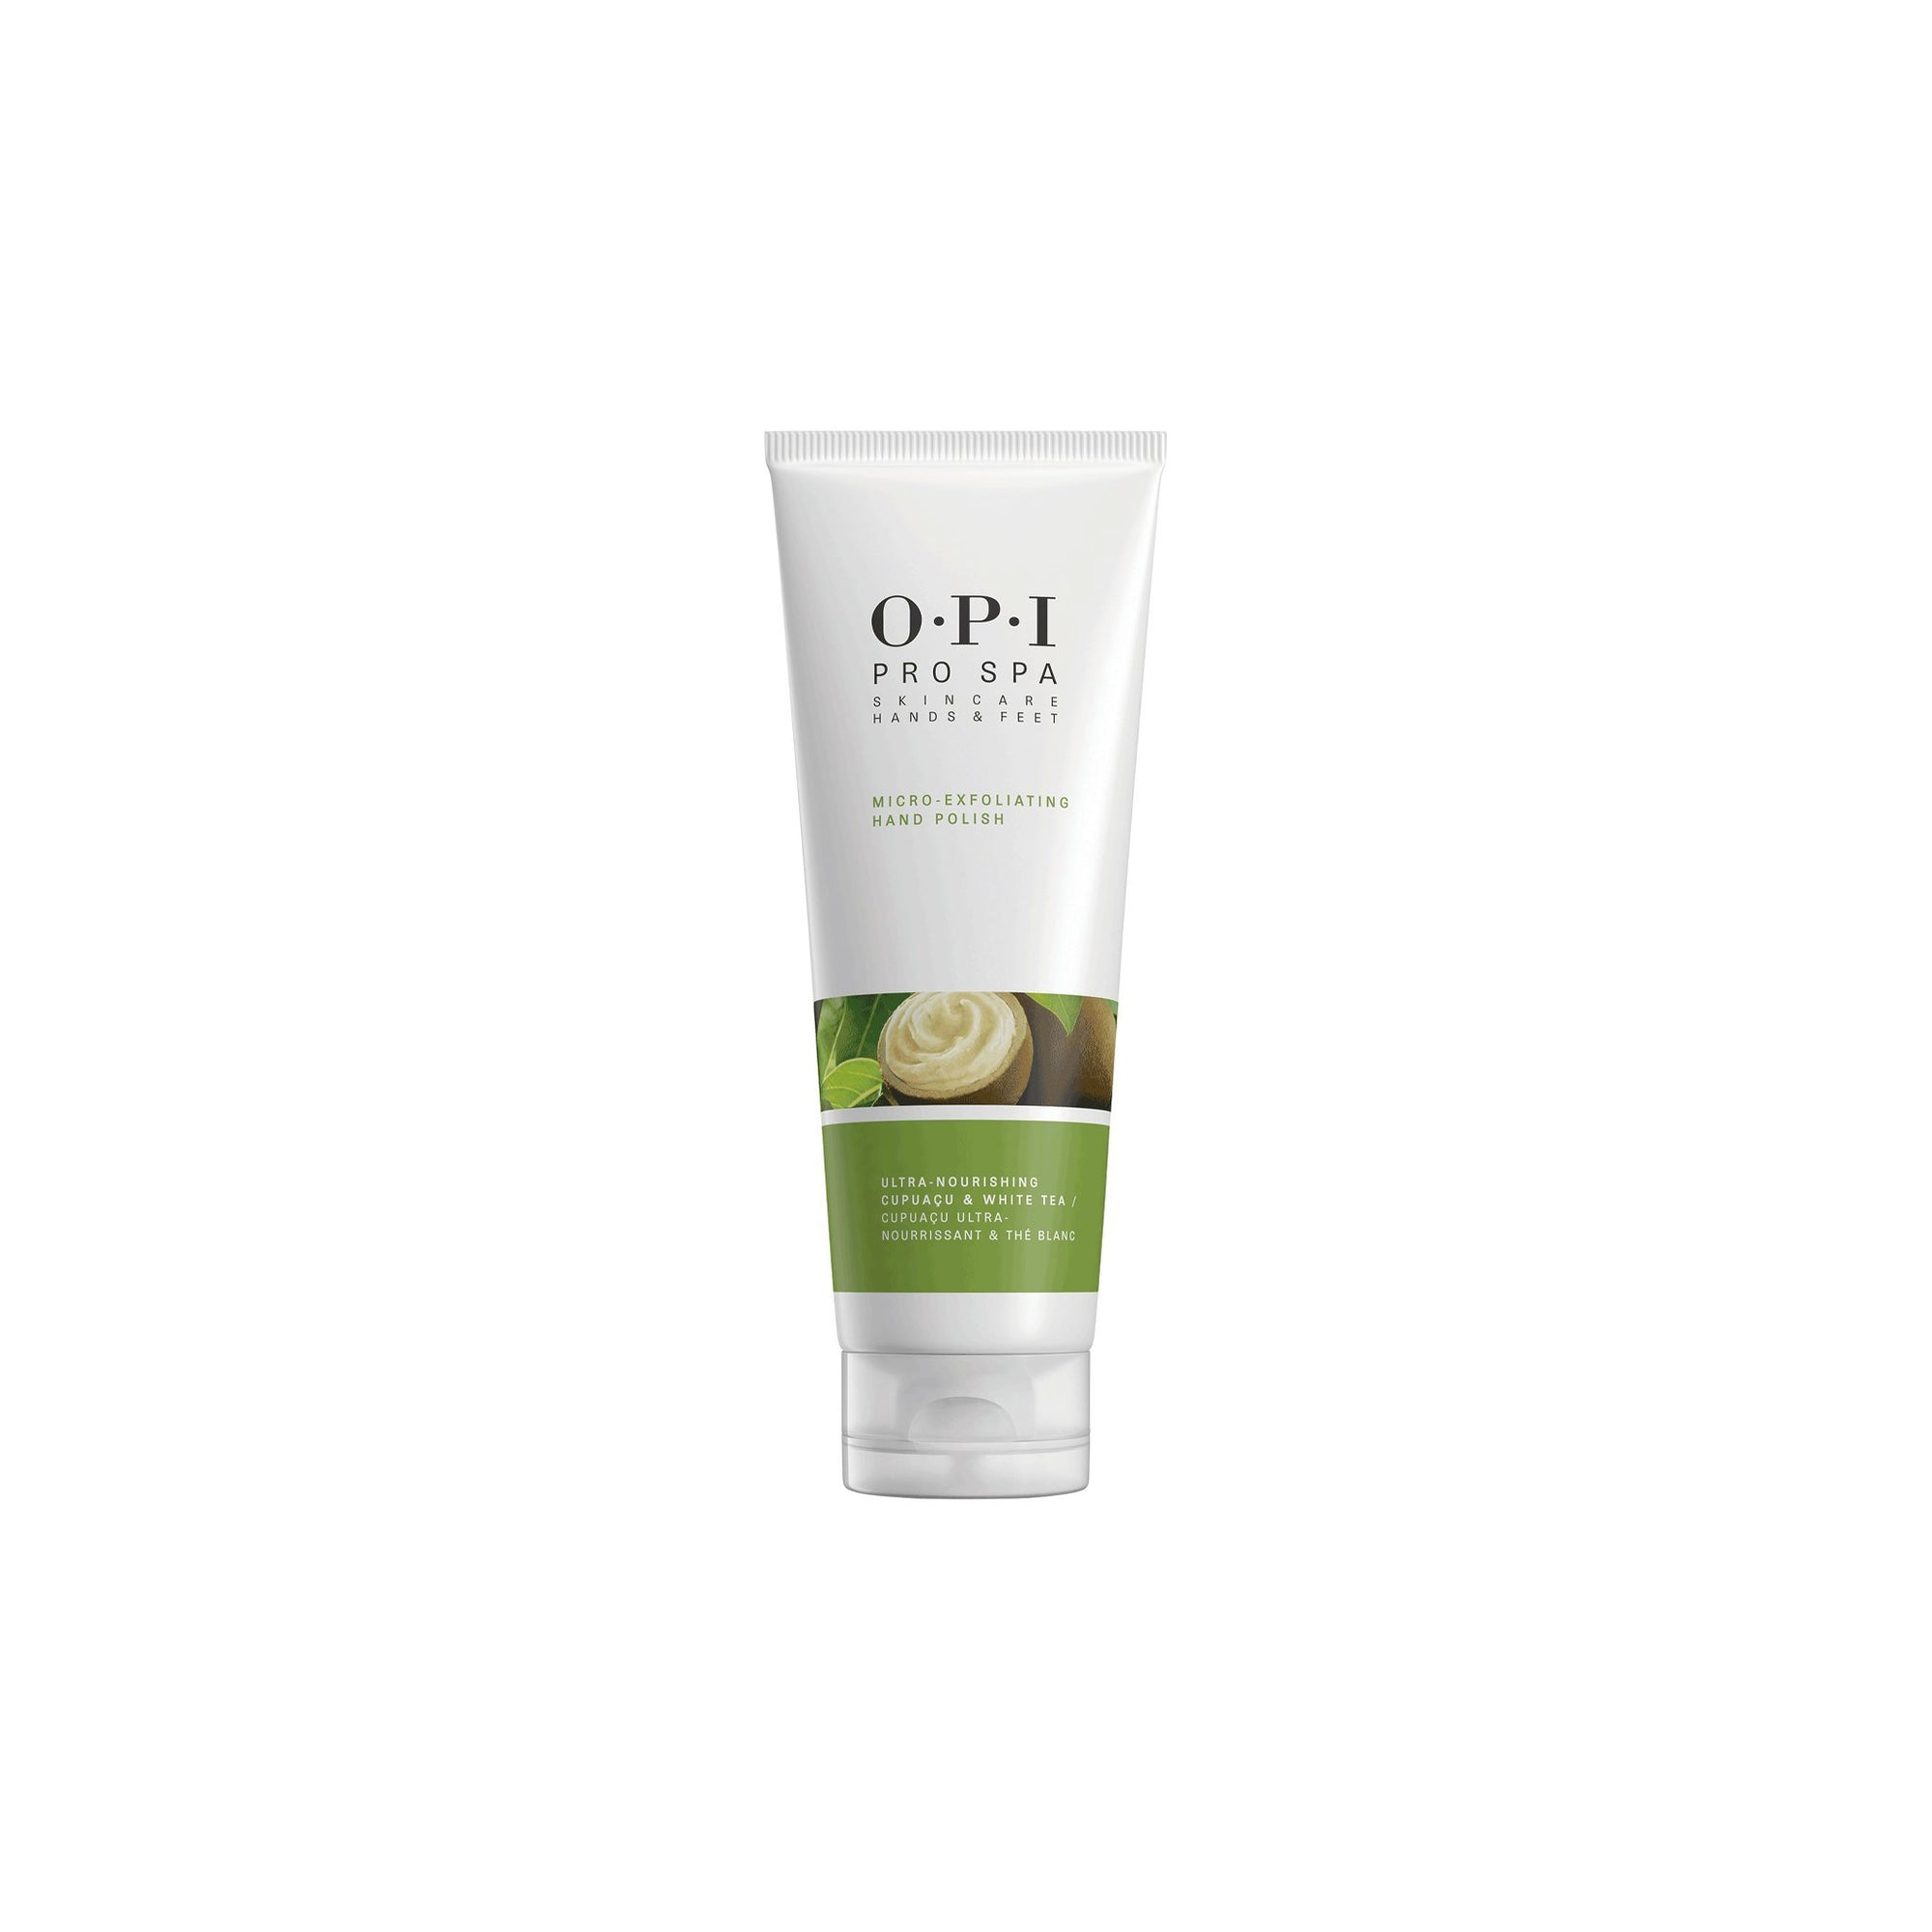 O.P.I ProSpa Micro-Exfoliating Hand Polish 118ml